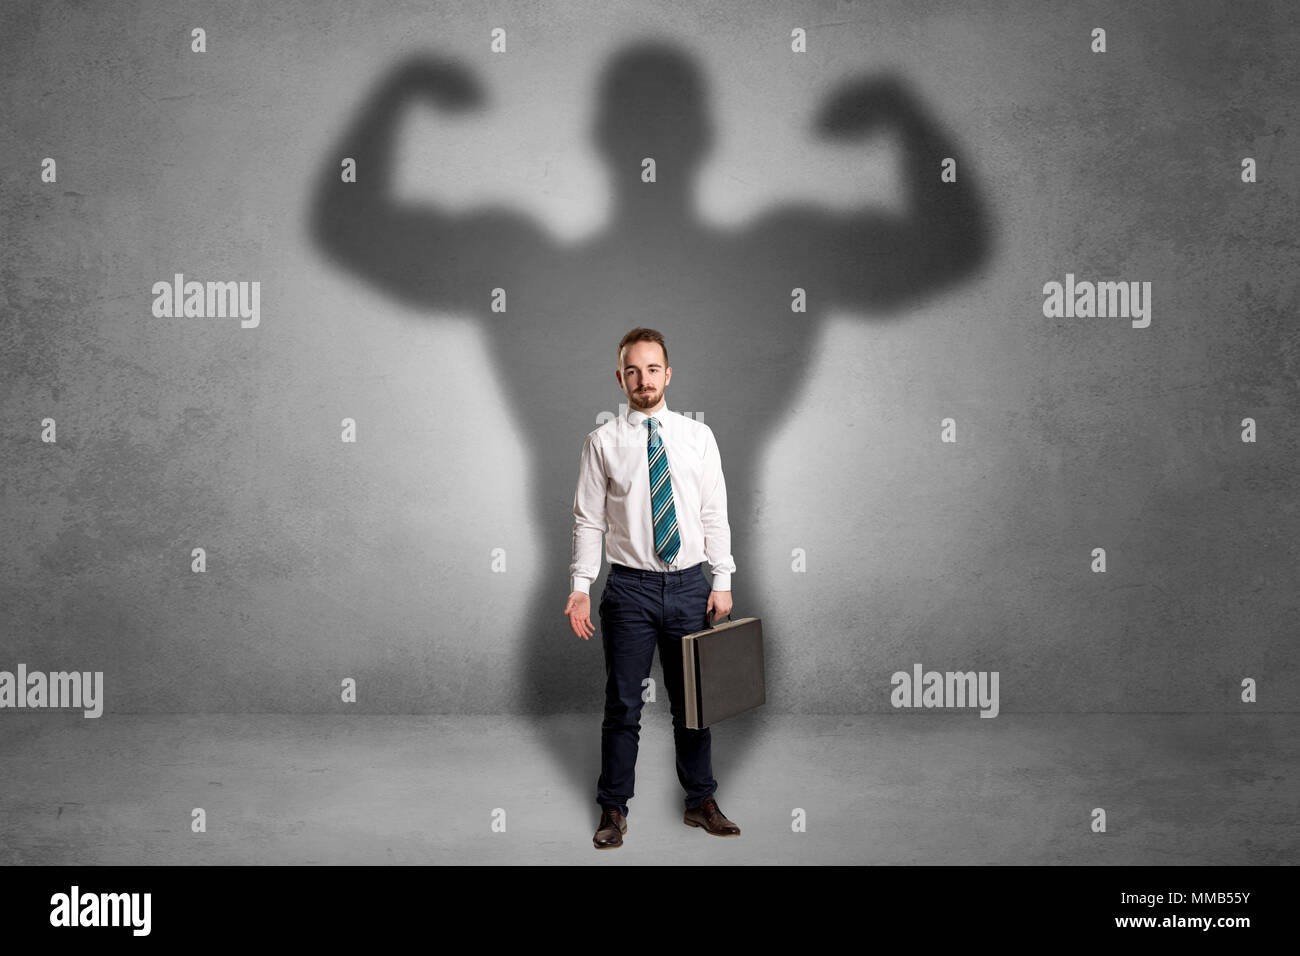 Lovely serious businessman standing with a muscular powerful shadow behind his back  - Stock Image